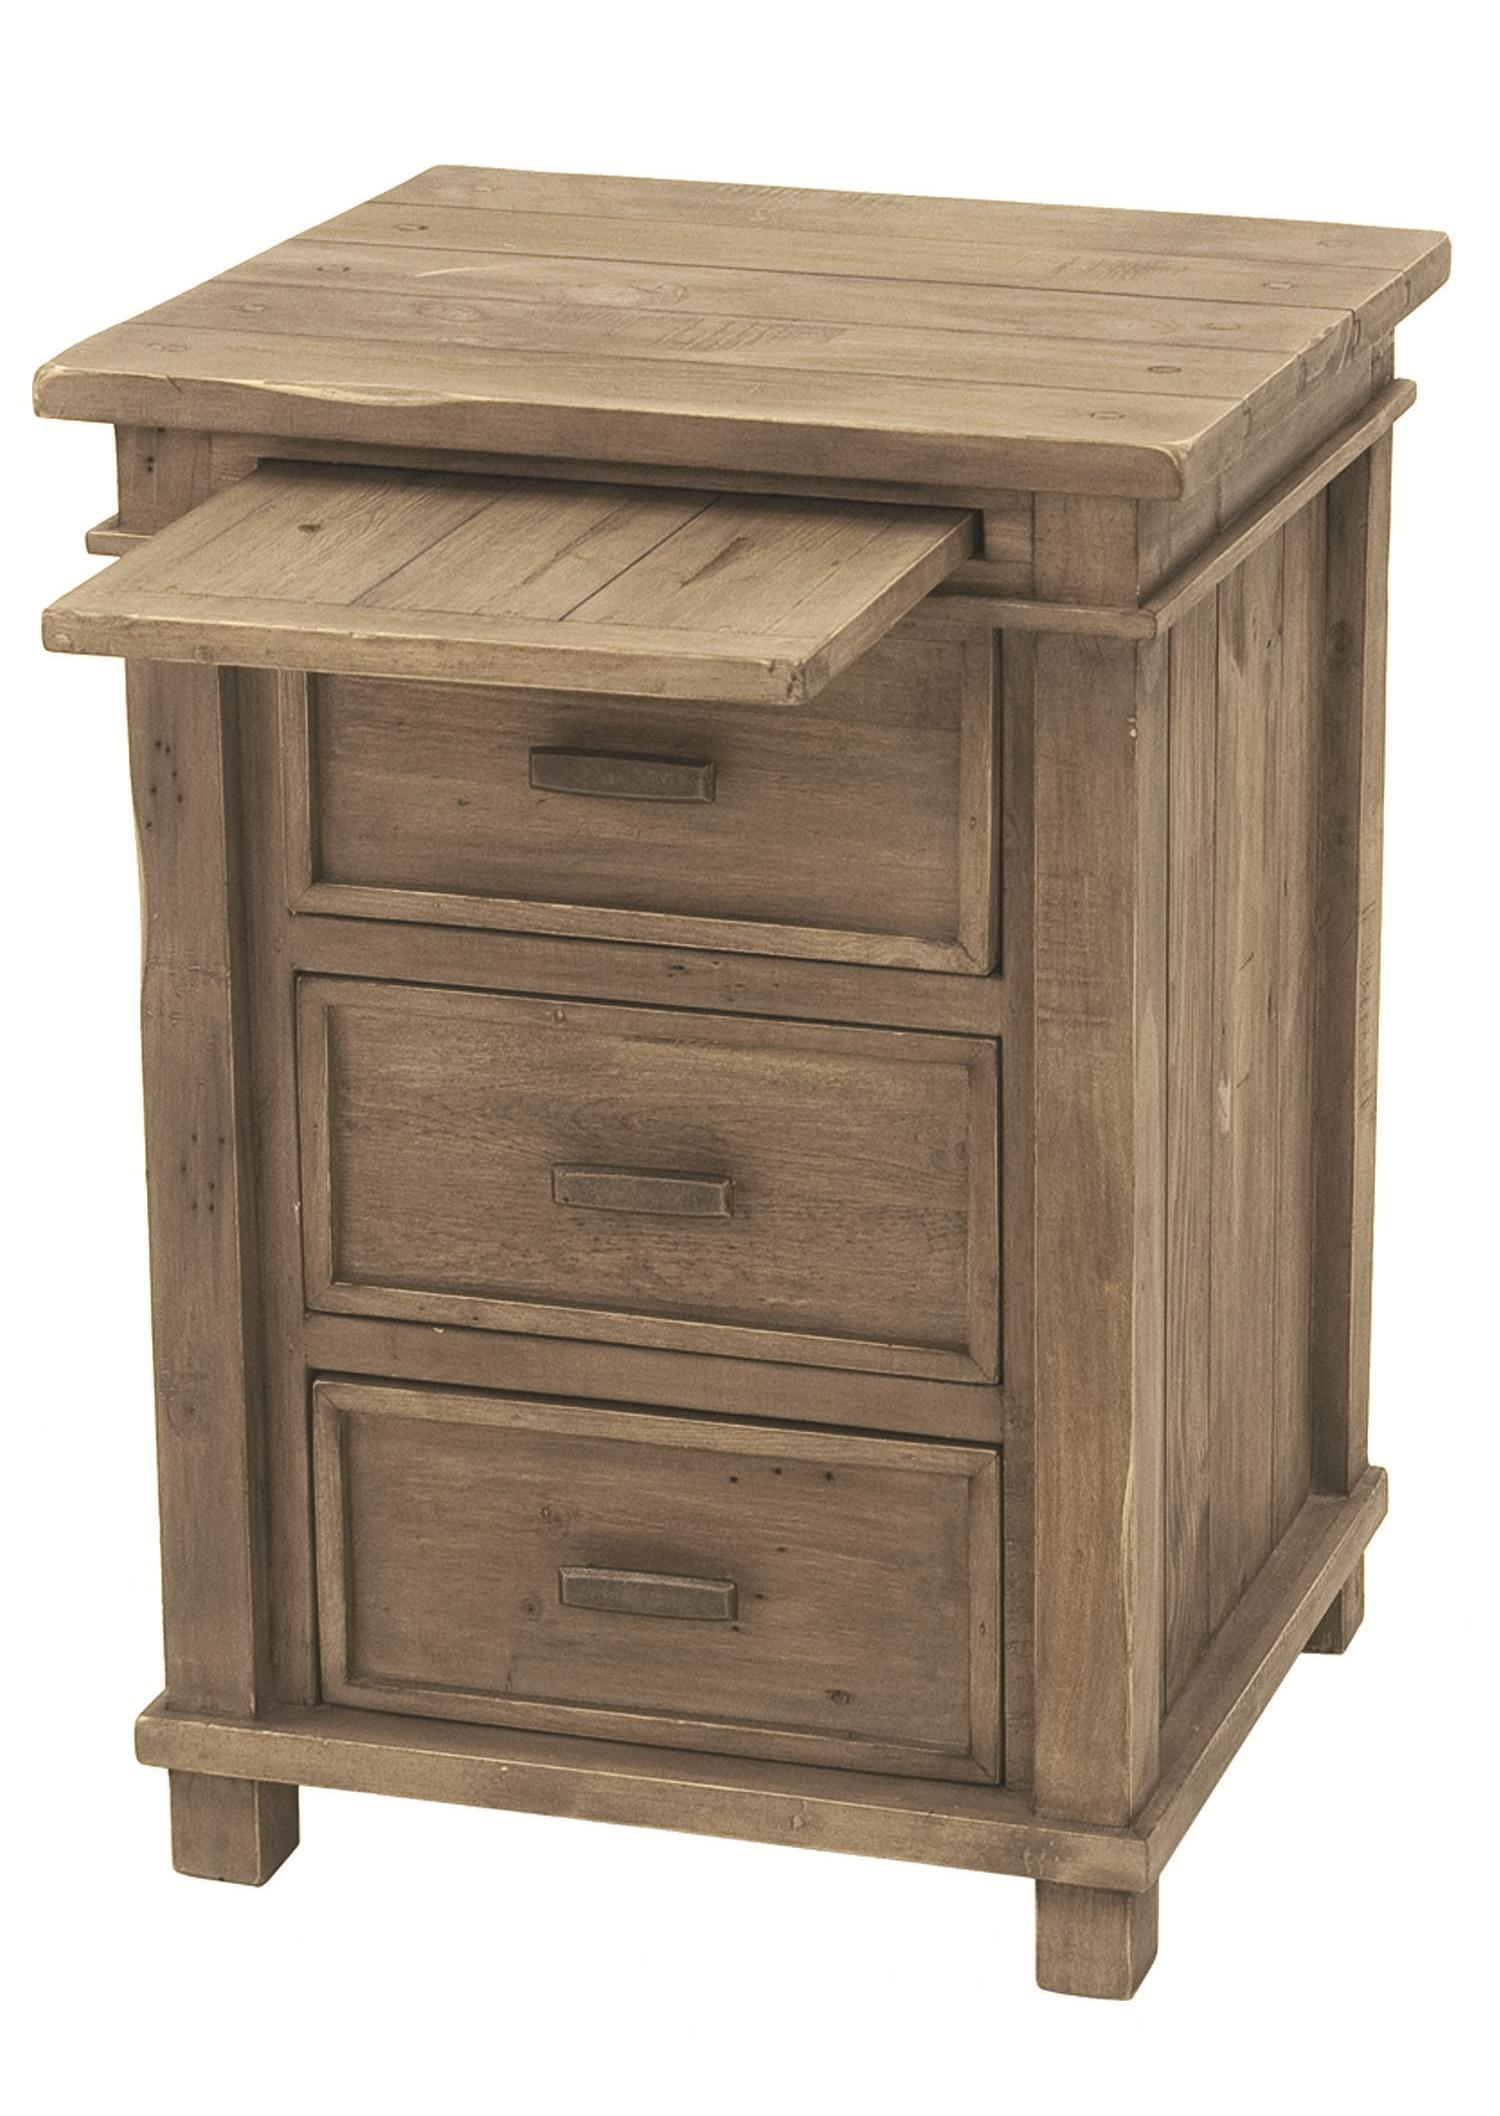 Four Hands Settler 3 Drawer Bedside Cabinet With Pull Out